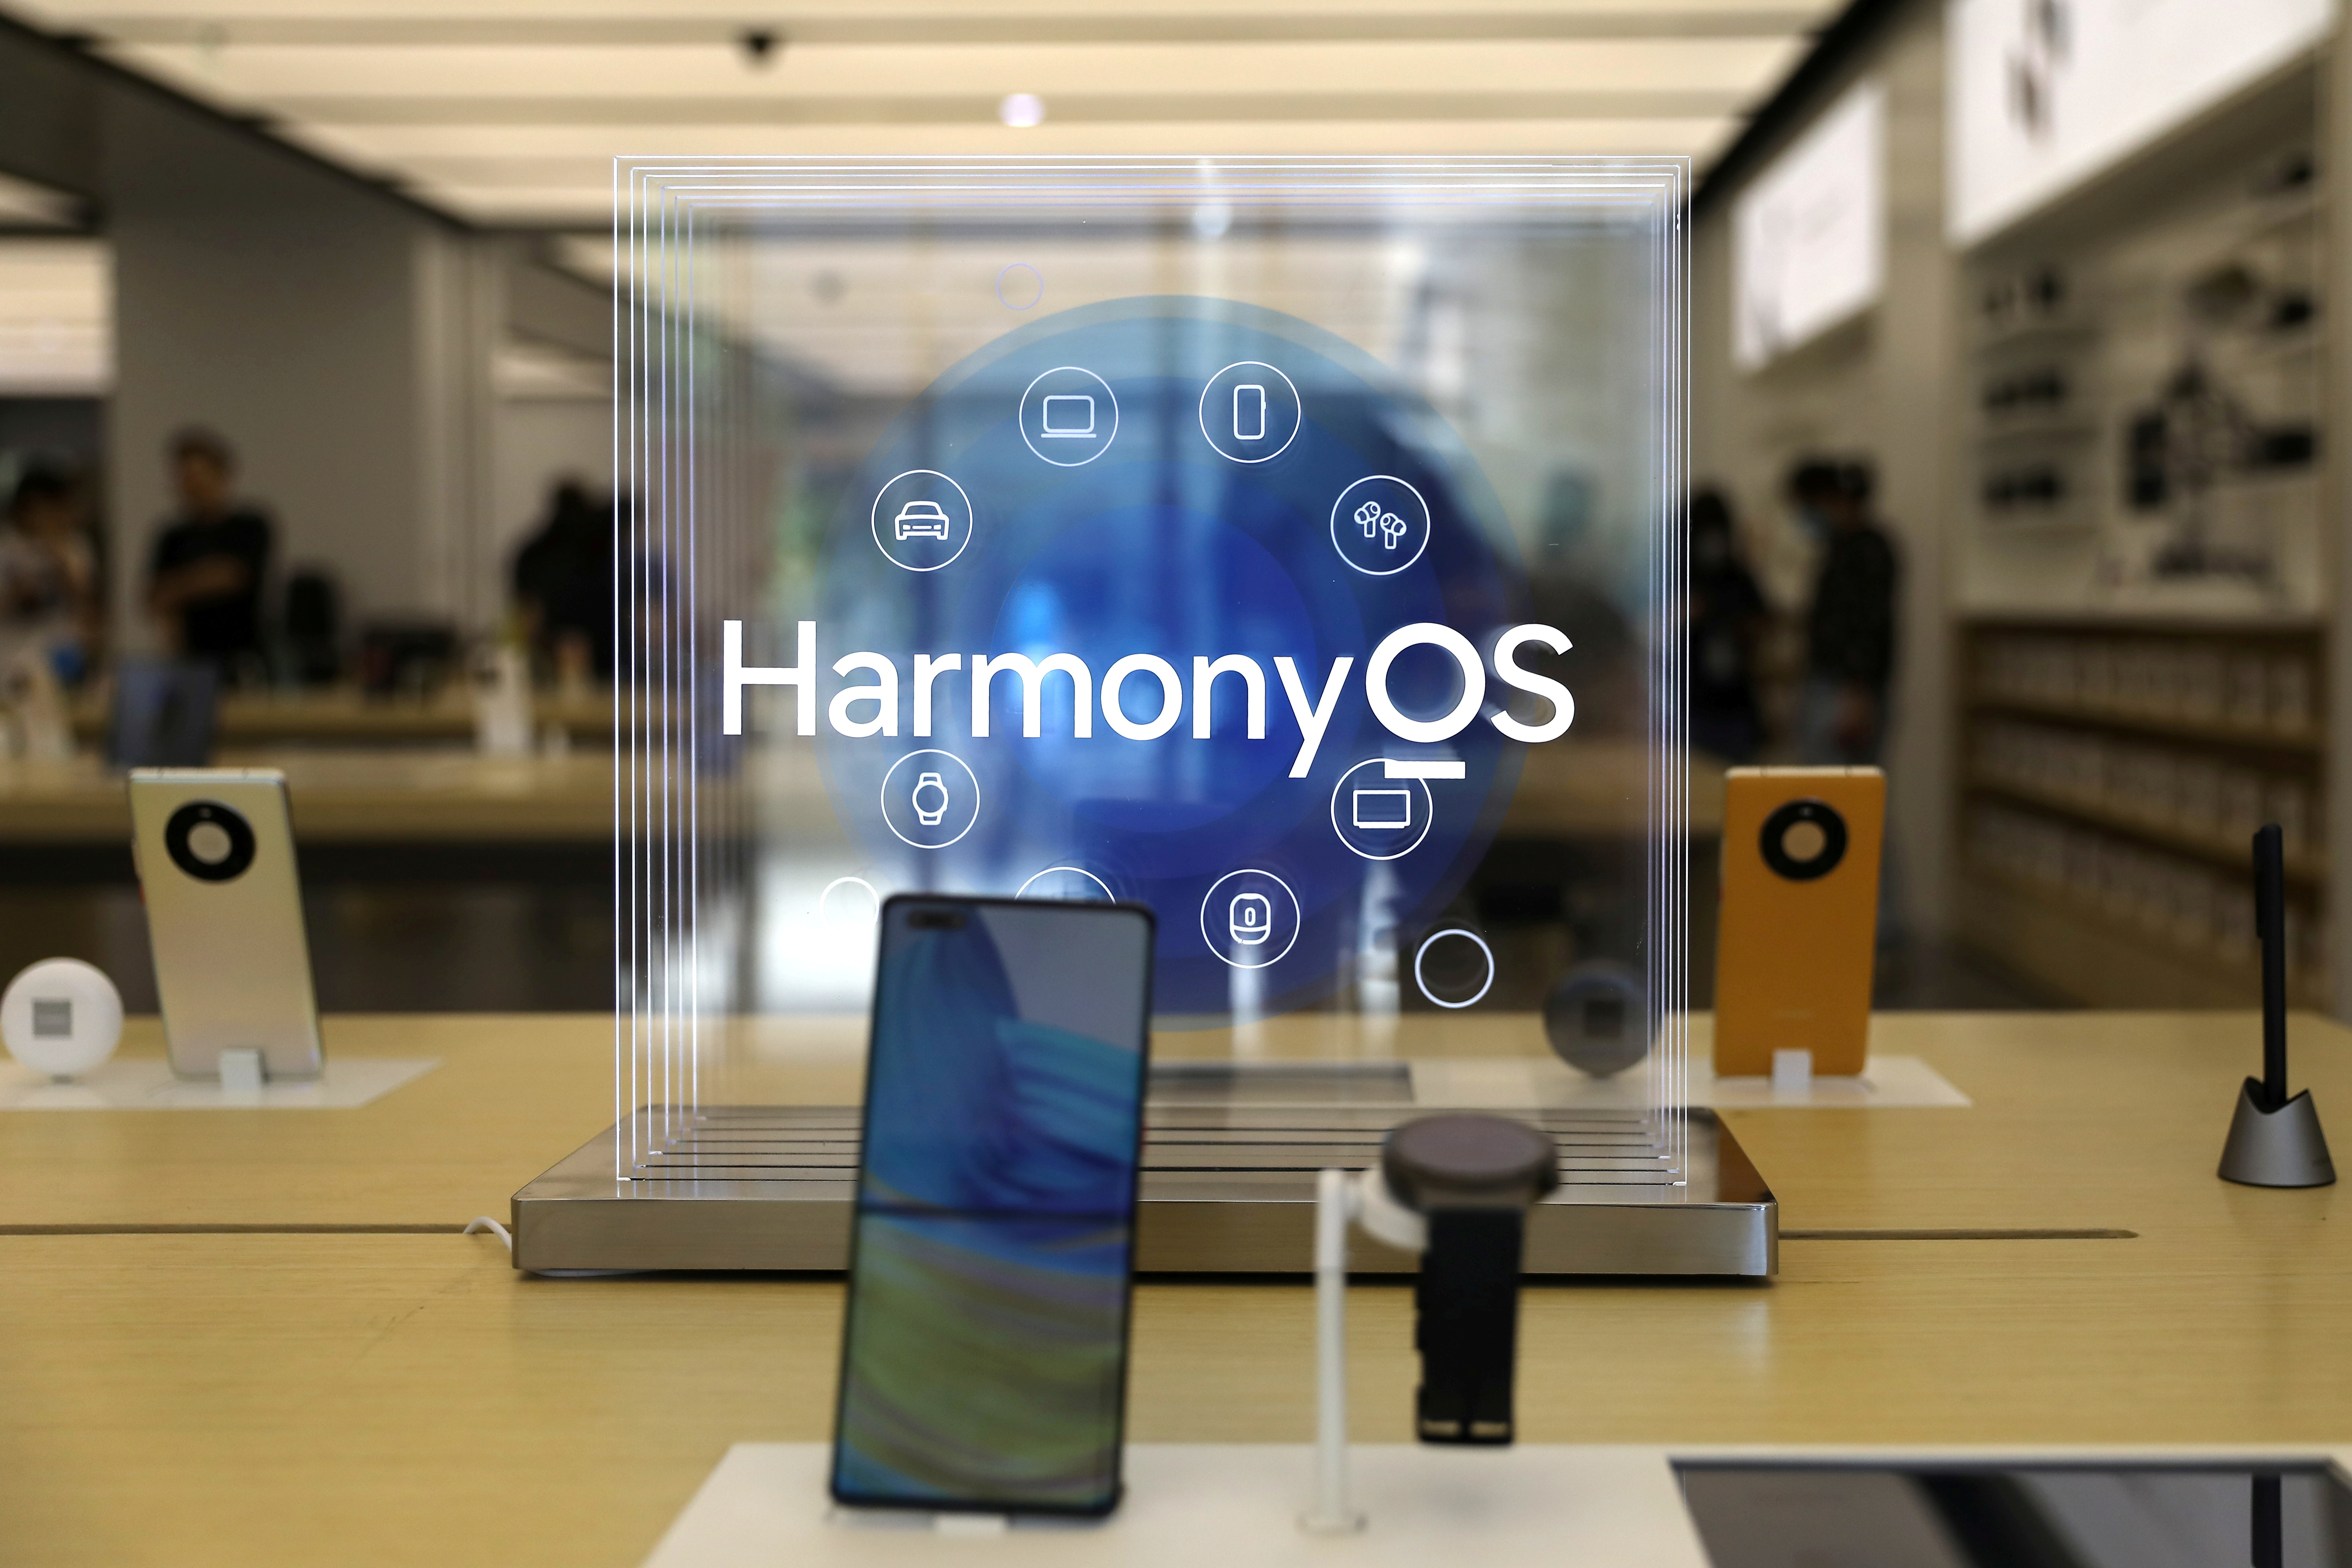 A Huawei Mate 40 smartphone installed with Huawei's operating system HarmonyOS is displayed at a Huawei store in Beijing, China June 3, 2021. REUTERS/Tingshu Wang